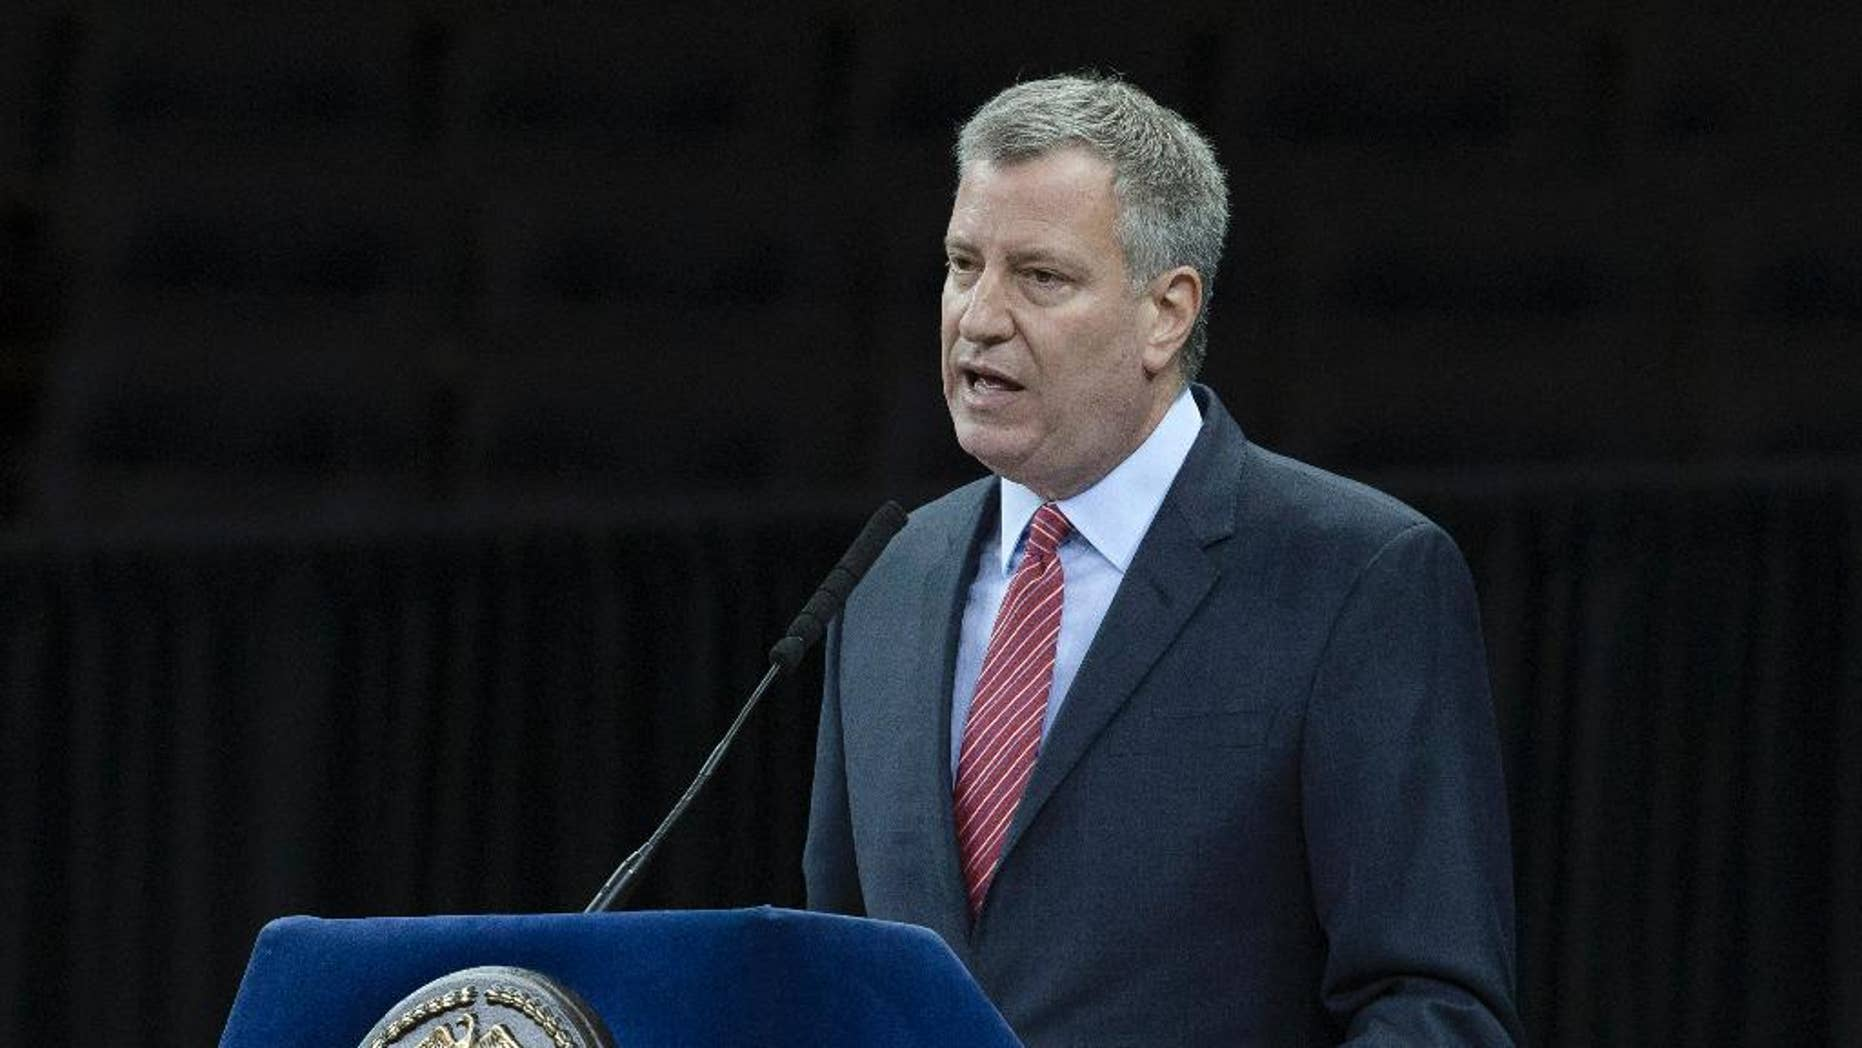 File-This Dec. 29, 2014, file photo shows New York City Mayor Bill de Blasio speaking during a New York Police Academy graduation ceremony at Madison Square Garden in New York. In the aftermath of last month's terror attacks in Paris, New York City not only bolstered security but quietly stepped up outreach efforts to its Muslim community. It aimed to calm fears about any hate-filled retaliation while trying to extend government services to a community that often has felt neglected. (AP Photo/John Minchillo, File)